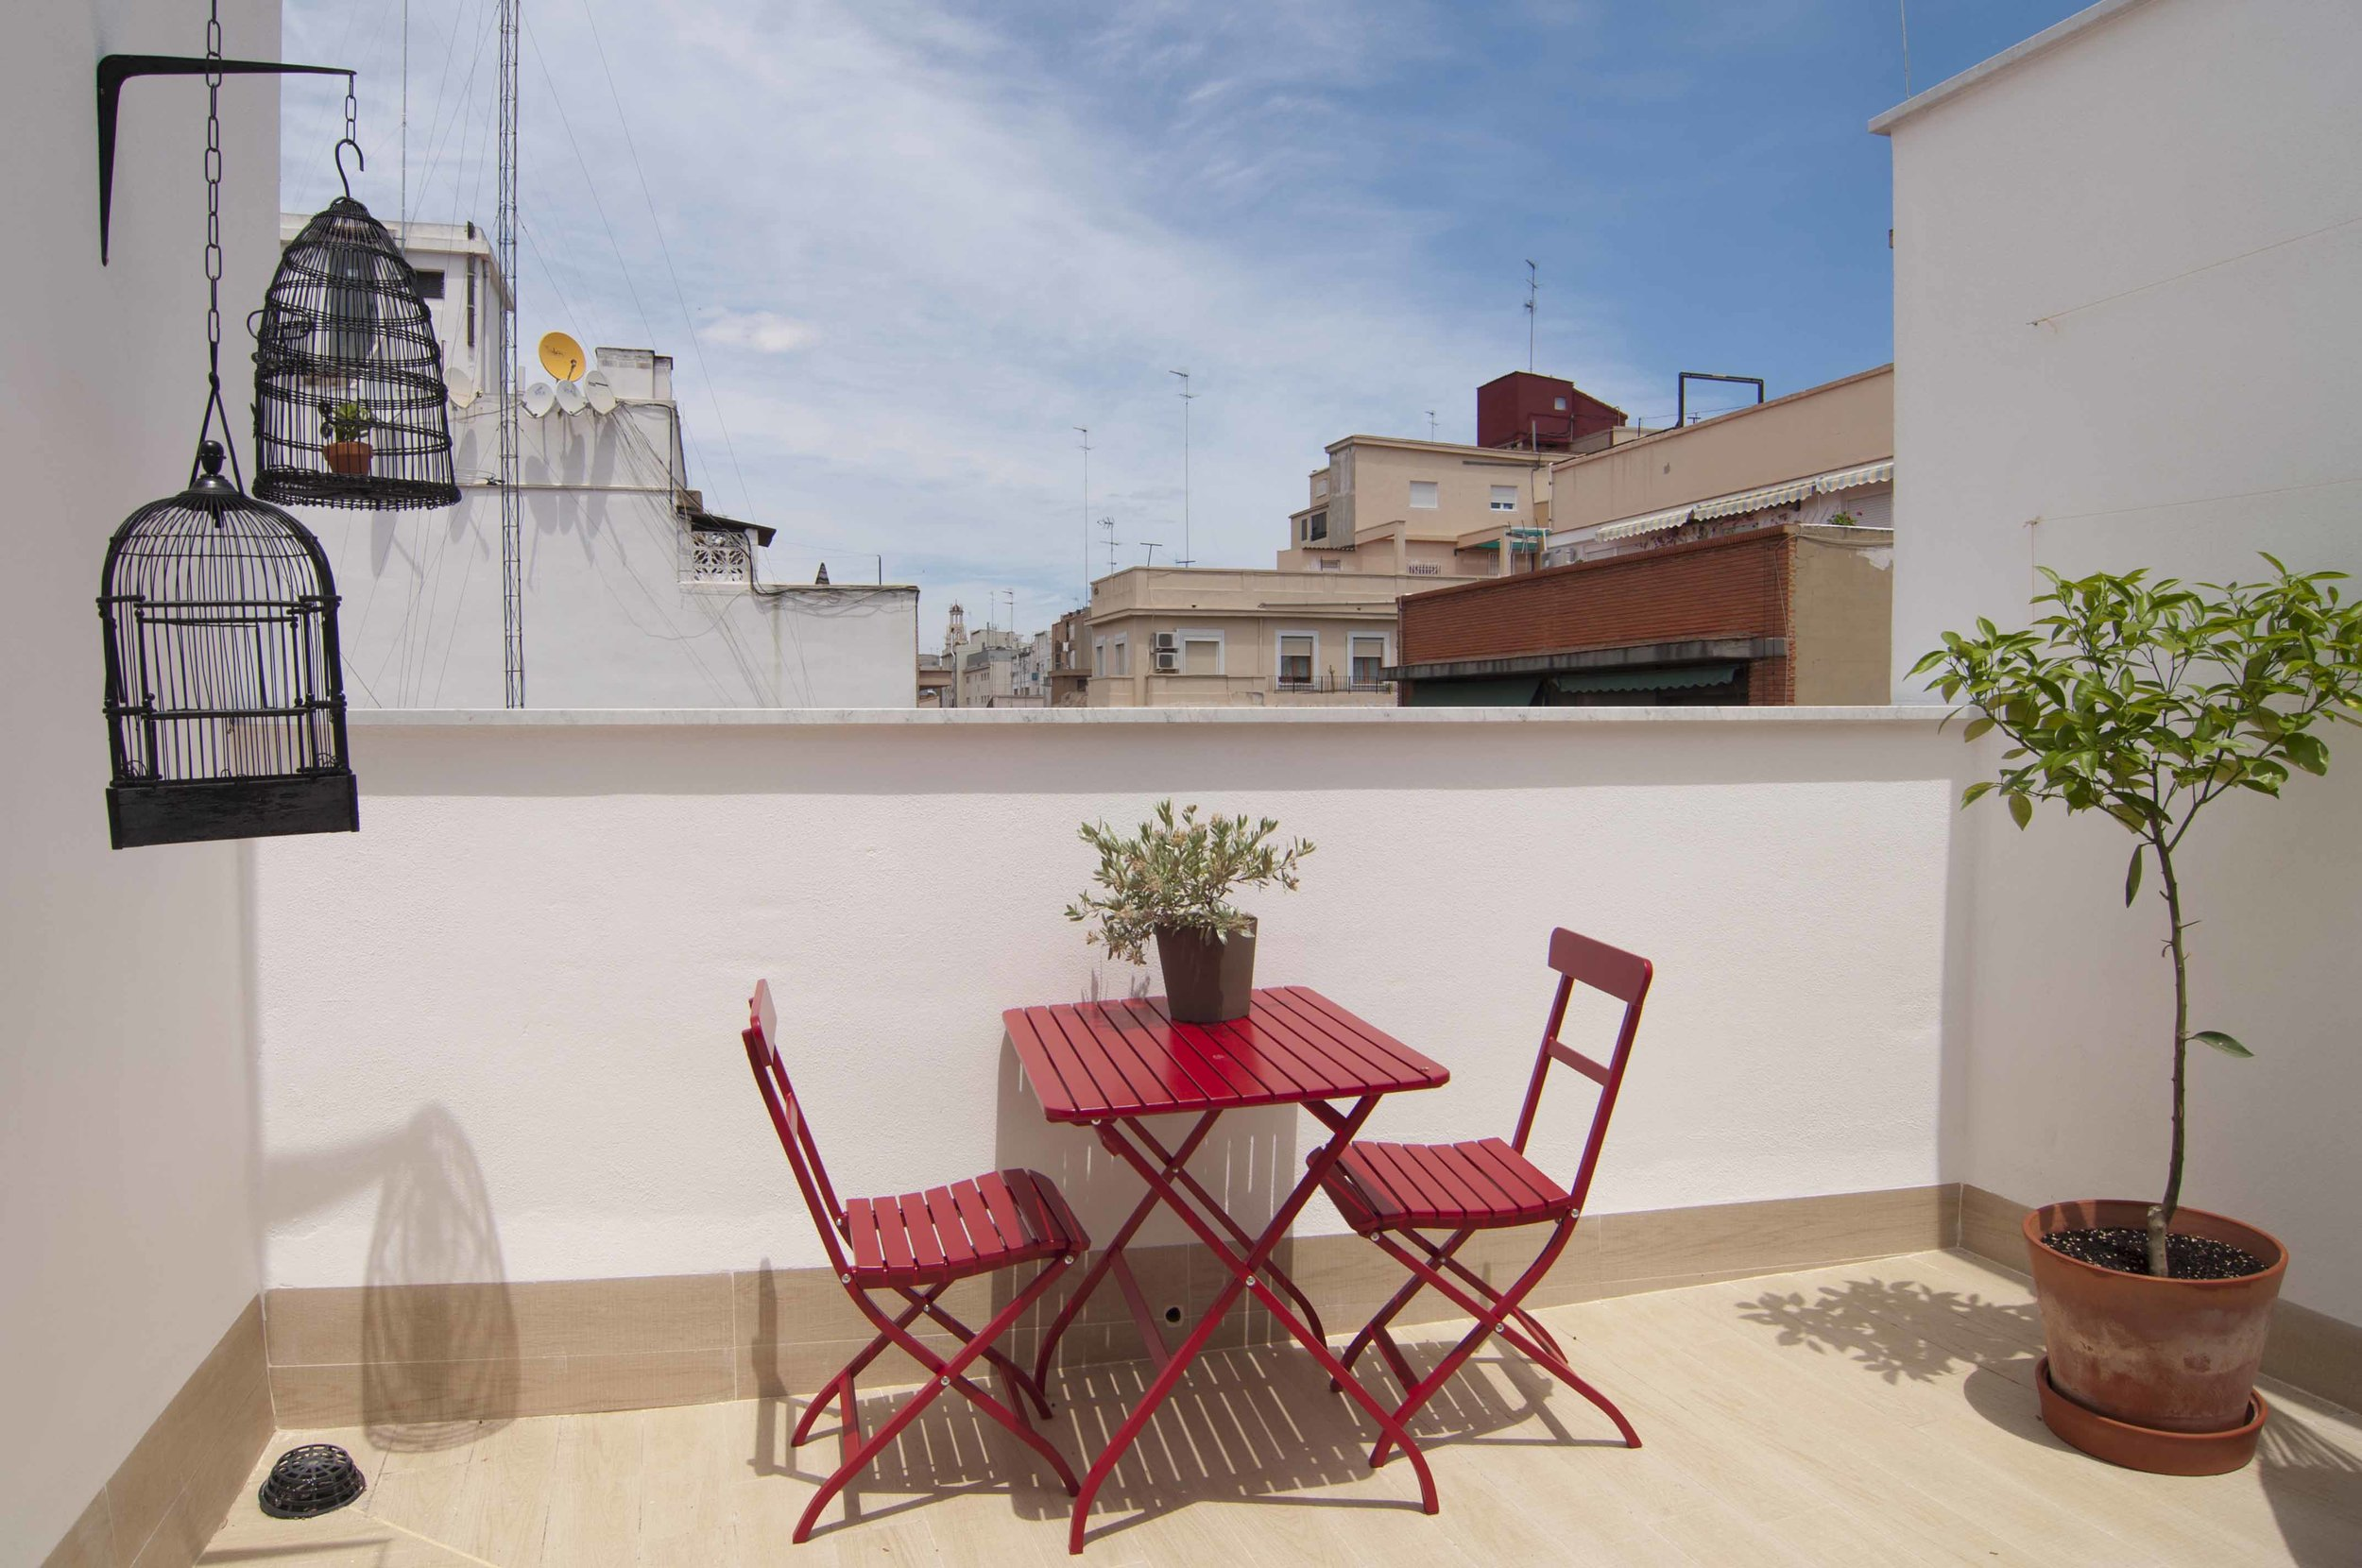 Roof terrace of penthouse at Zalamera B&B in Valencia, Spain 0478.jpg